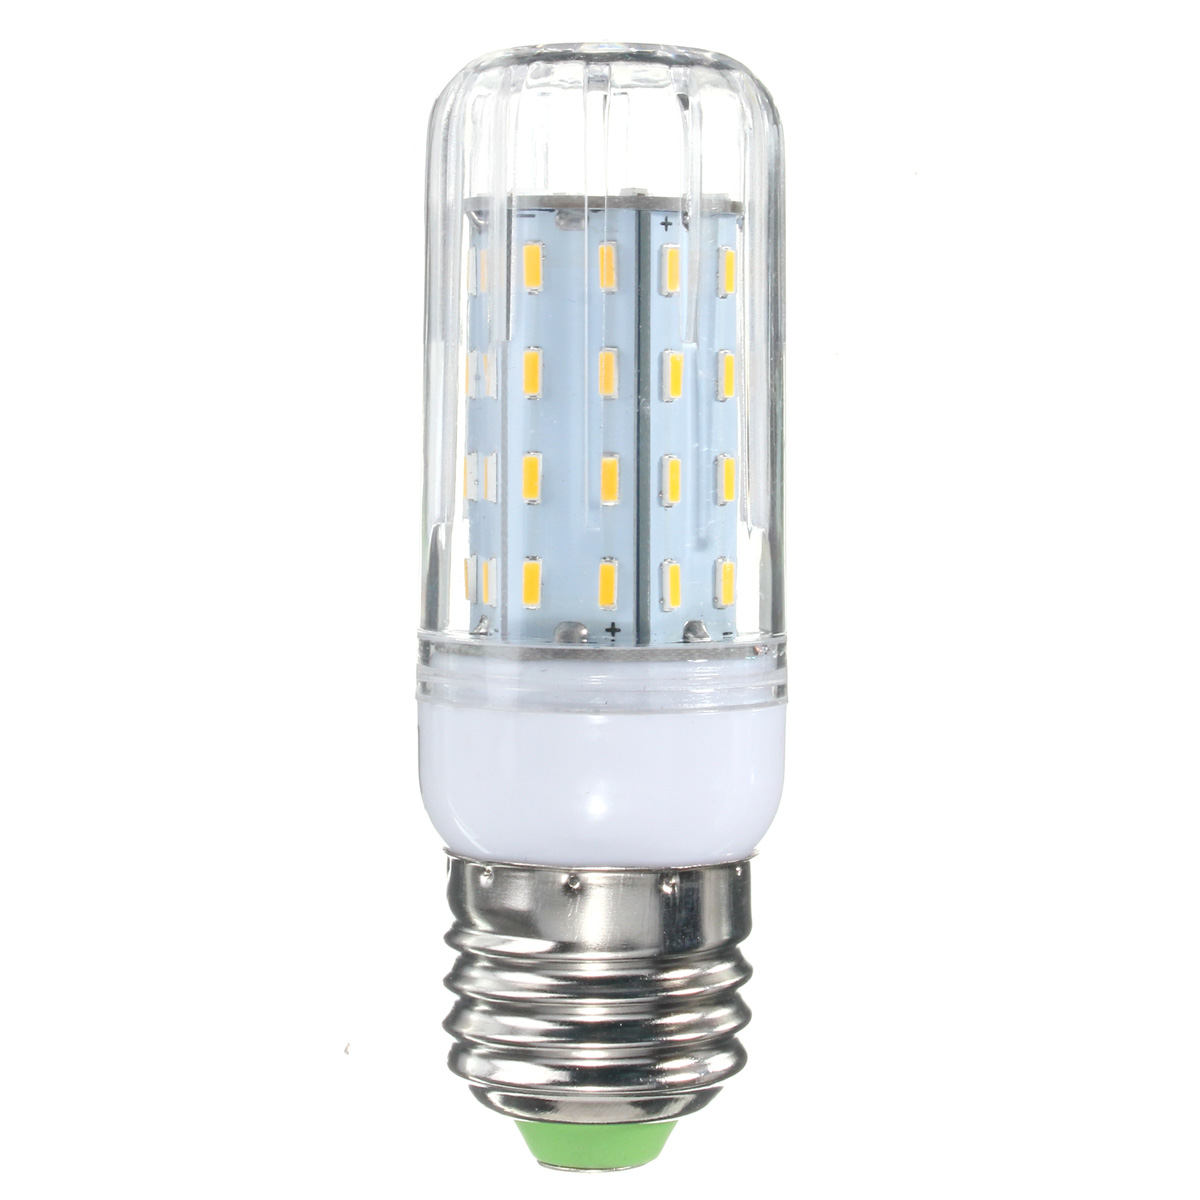 E27 B22 E12 E14 G9 GU10 6W 56 SMD 4014 LED Warm White White Cover Corn Bulb AC 110V